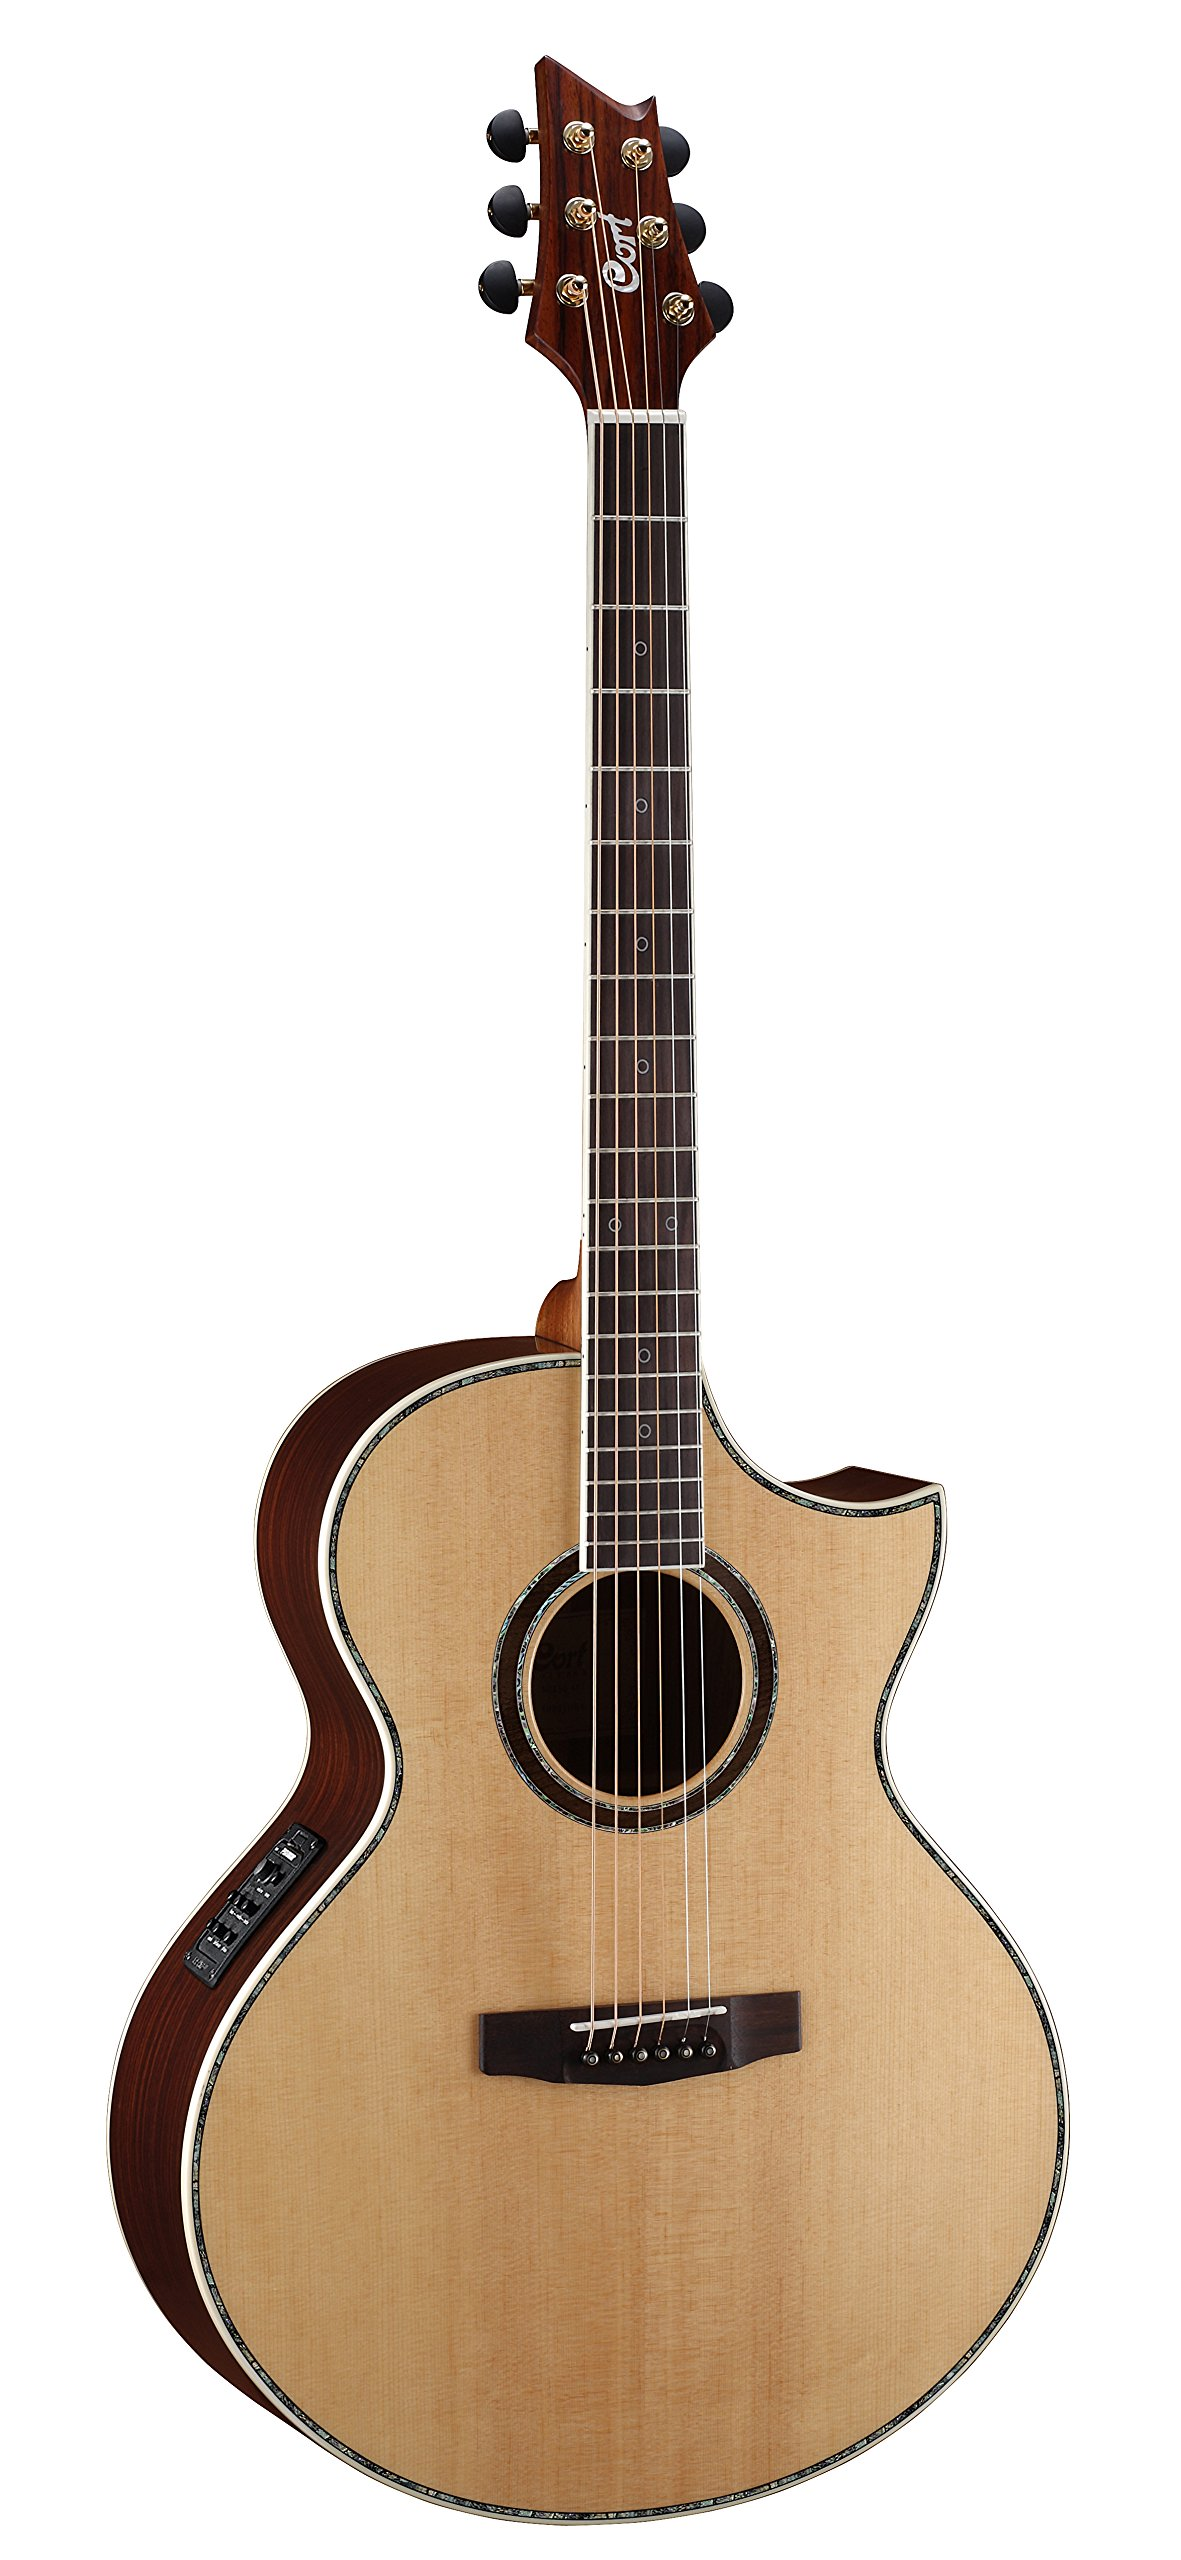 cort 6 string acoustic electric guitar right handed ndx baritone ns guitar affinity. Black Bedroom Furniture Sets. Home Design Ideas